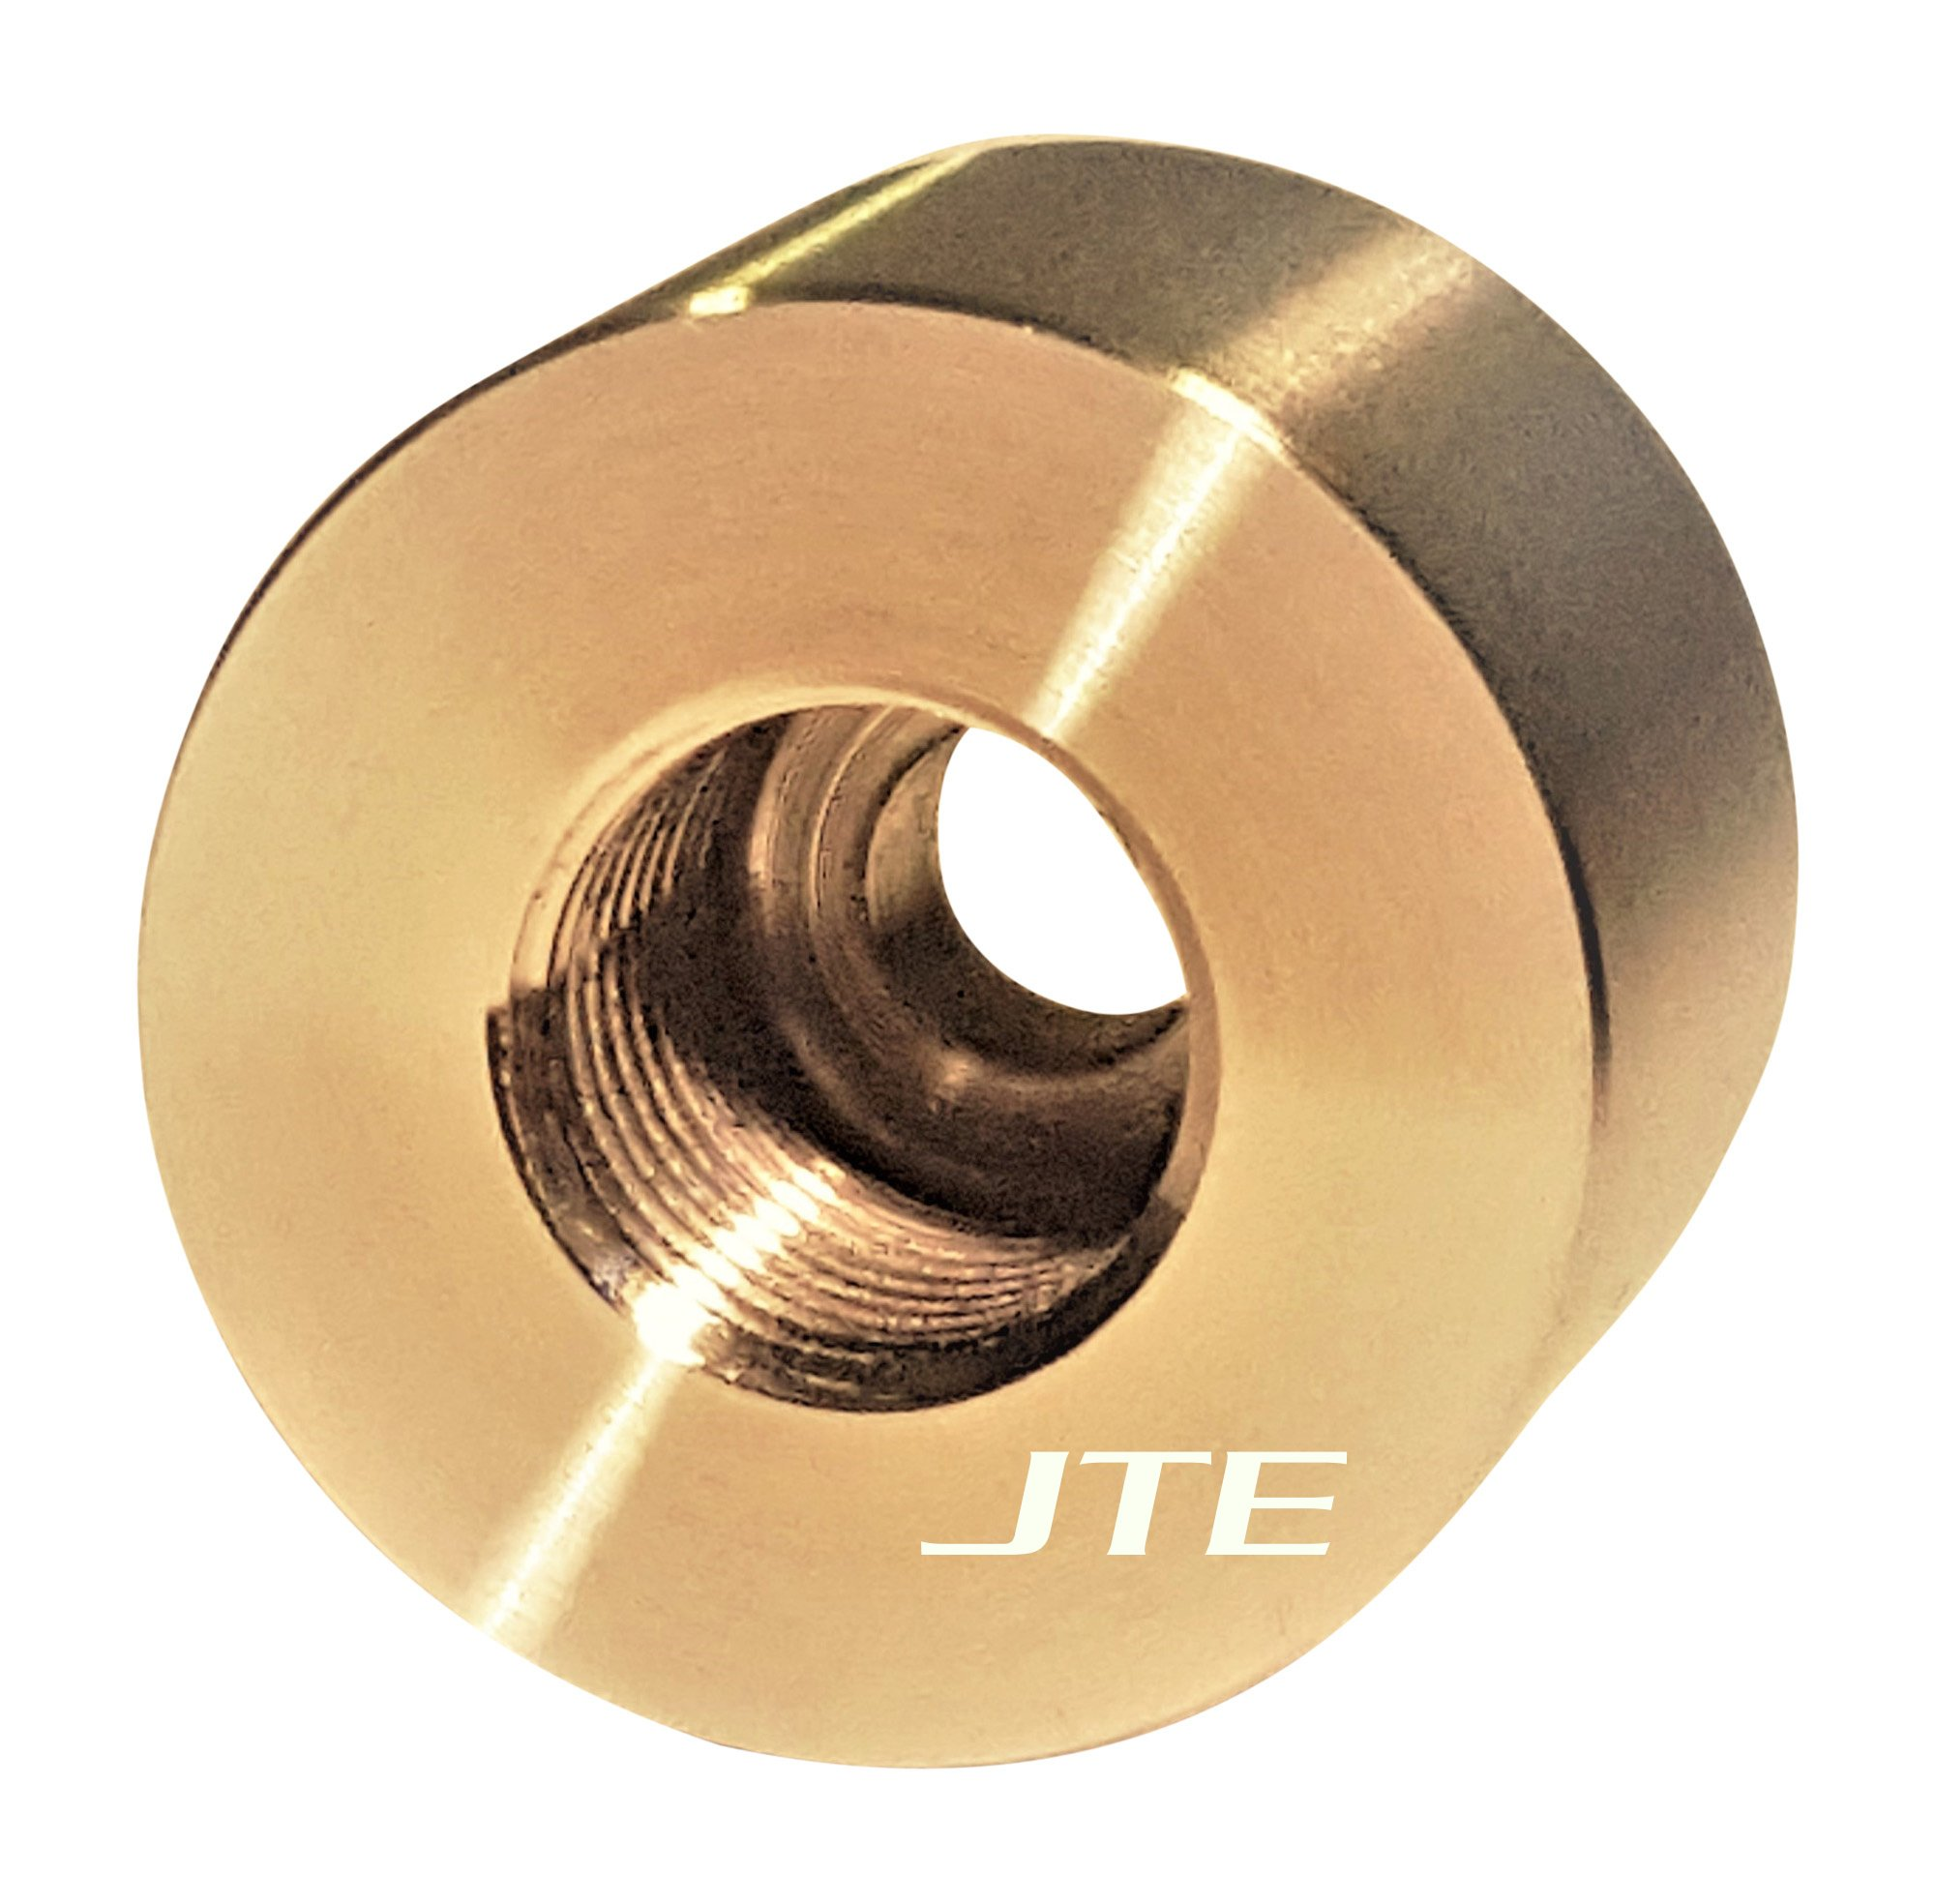 JTE Products 12MMEGT - 12mm X 1.25 Premium EGT Sensor Repair Fitting/Weld Bung - CNC 304 Stainless - for Ford Powerstroke and Ram Cummins Diesels - Made in USA